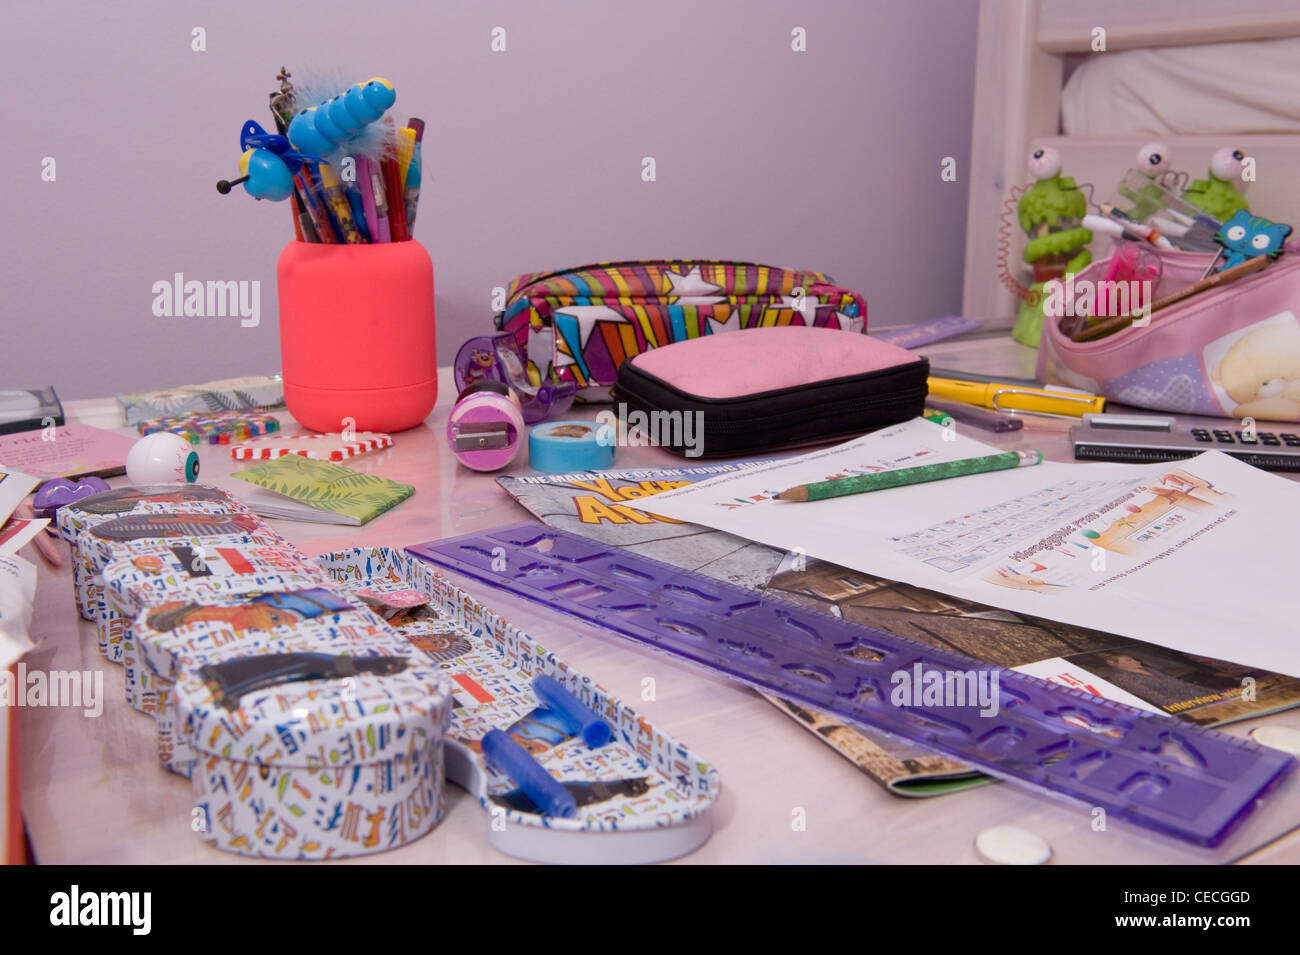 A child's desk, covered in a wide variety of stationery. - Stock Image